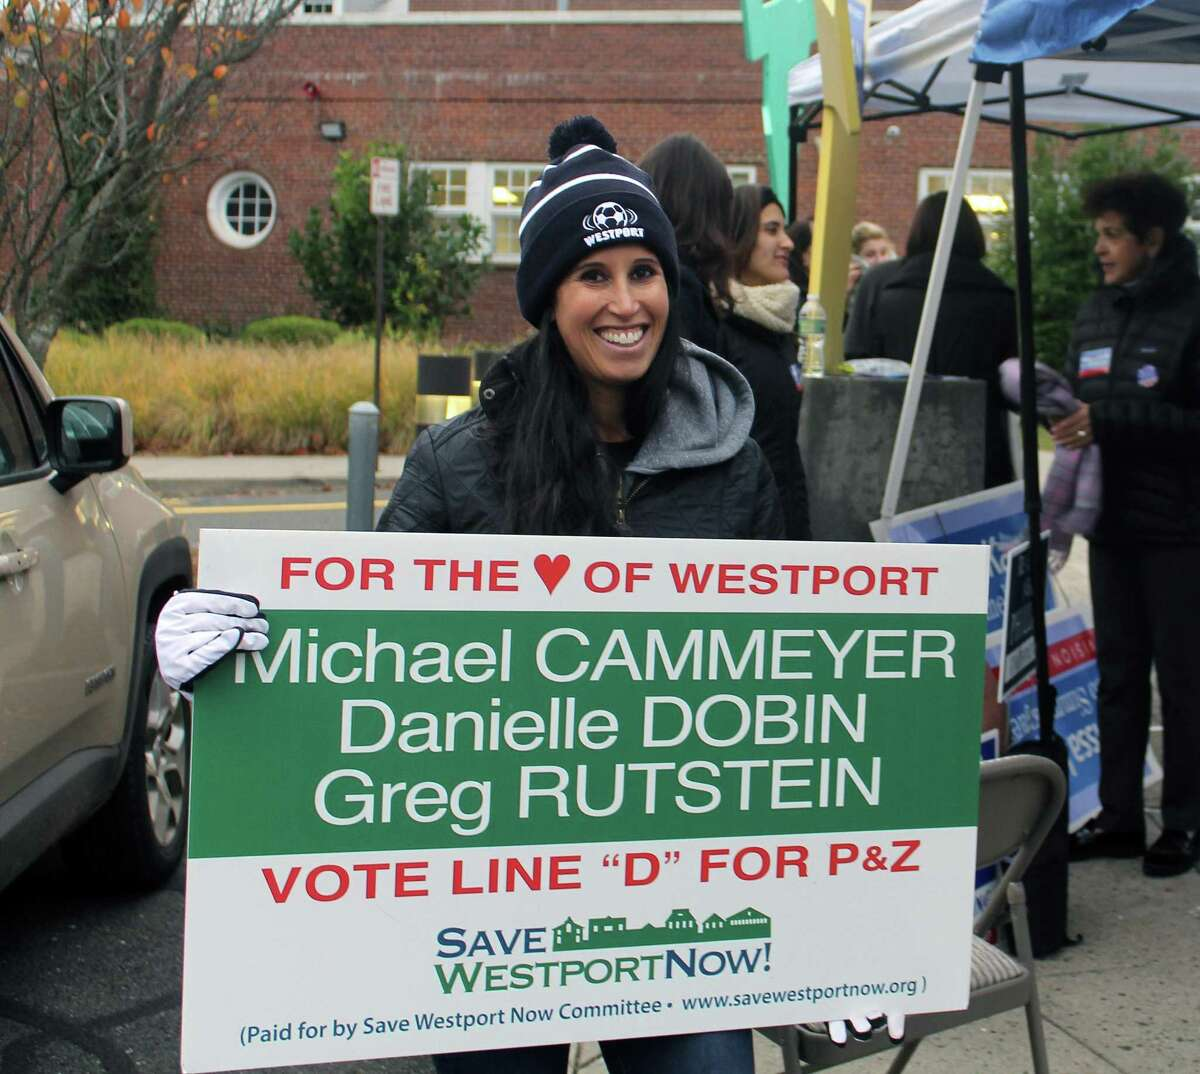 Megan Rutstein campaigns for her husband Greg Rutstein outside of Saugatuck Elementary School on Election Day. He won a seat on the Planning and Zoning Commission.